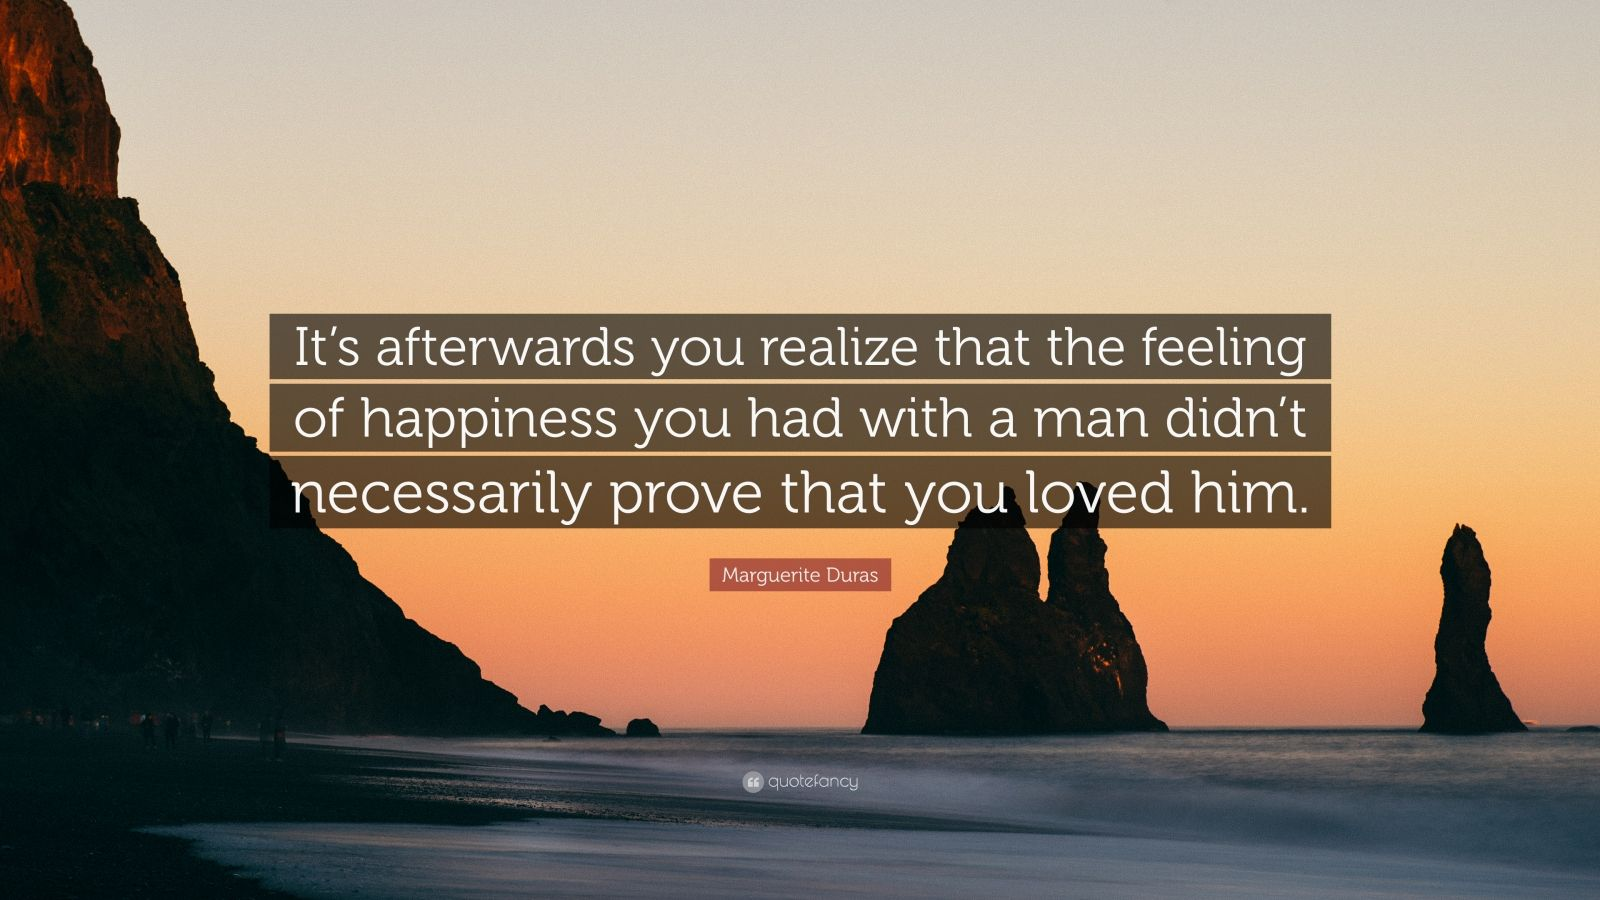 """Marguerite Duras Quote: """"It's afterwards you realize that the feeling of happiness you had with a man didn't necessarily prove that you loved him."""""""